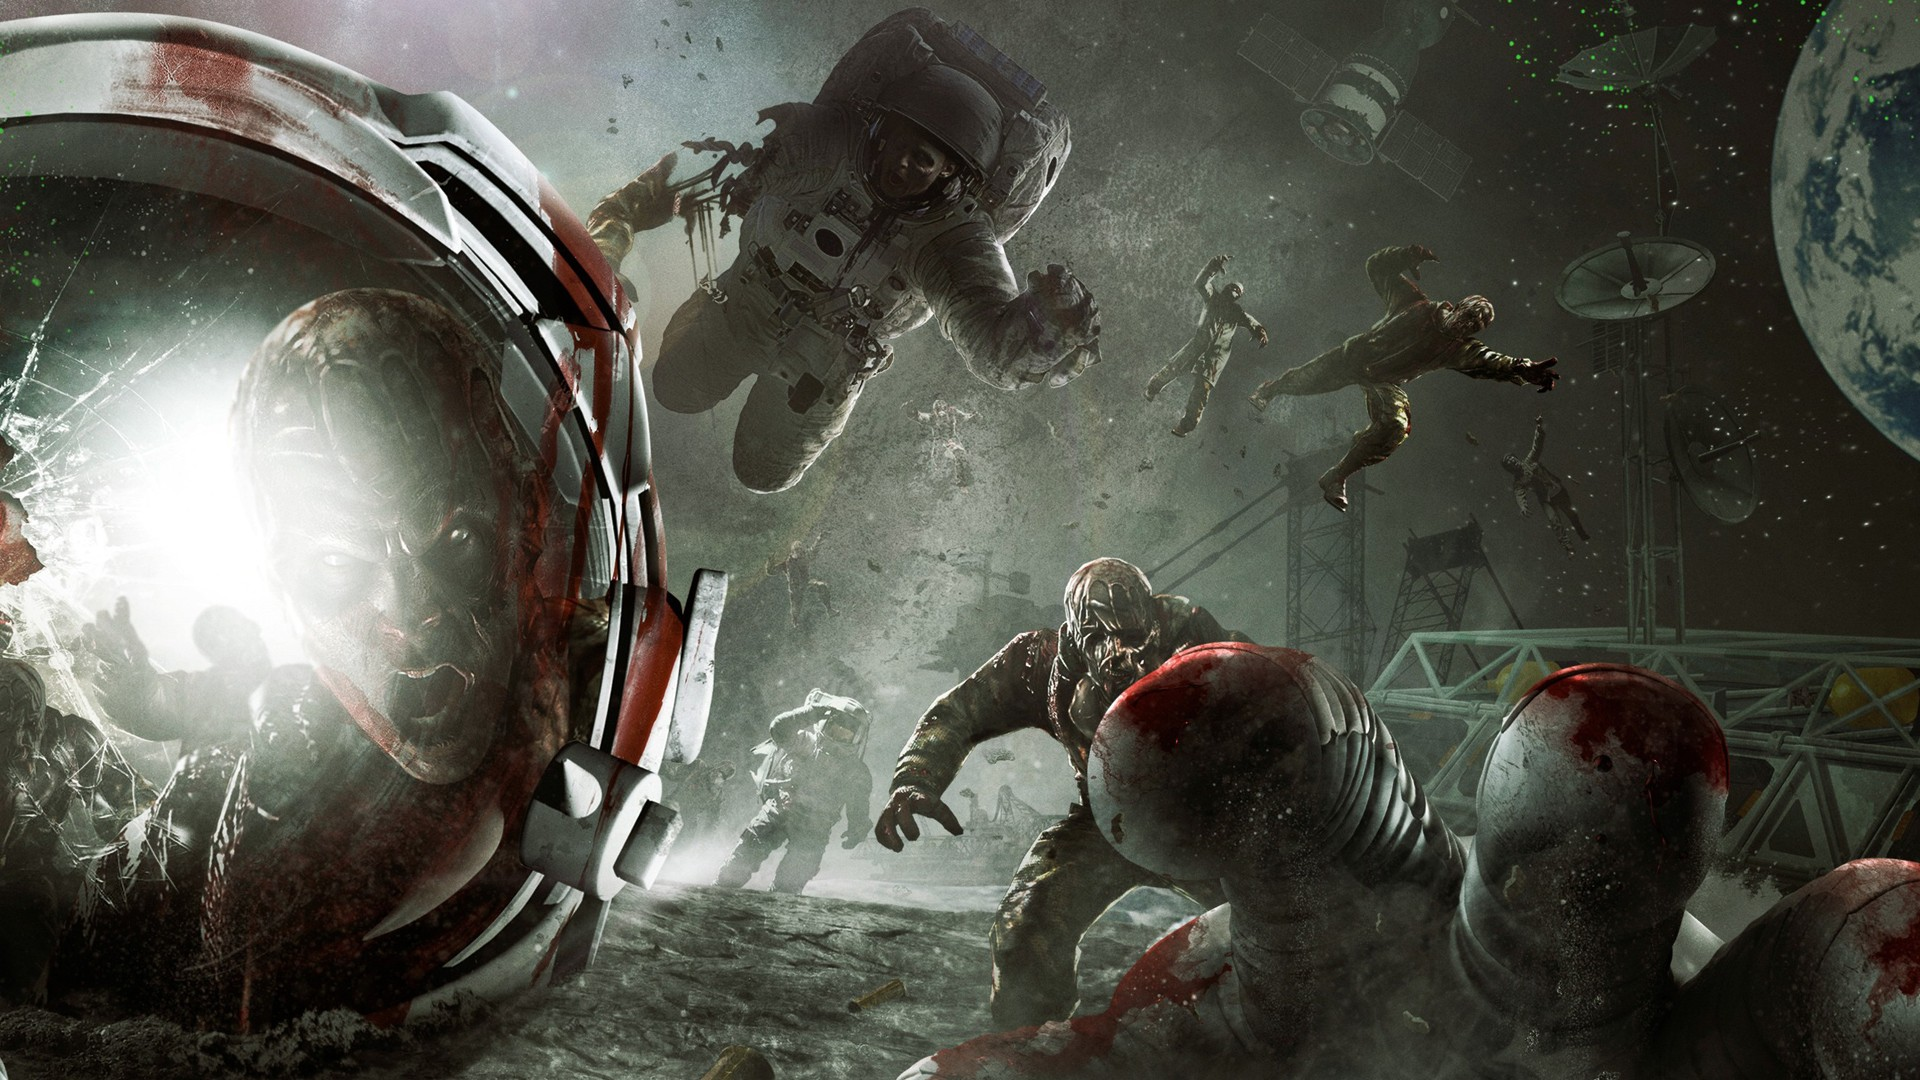 Zombies Wallpaper 1920x1080 Video games zom...